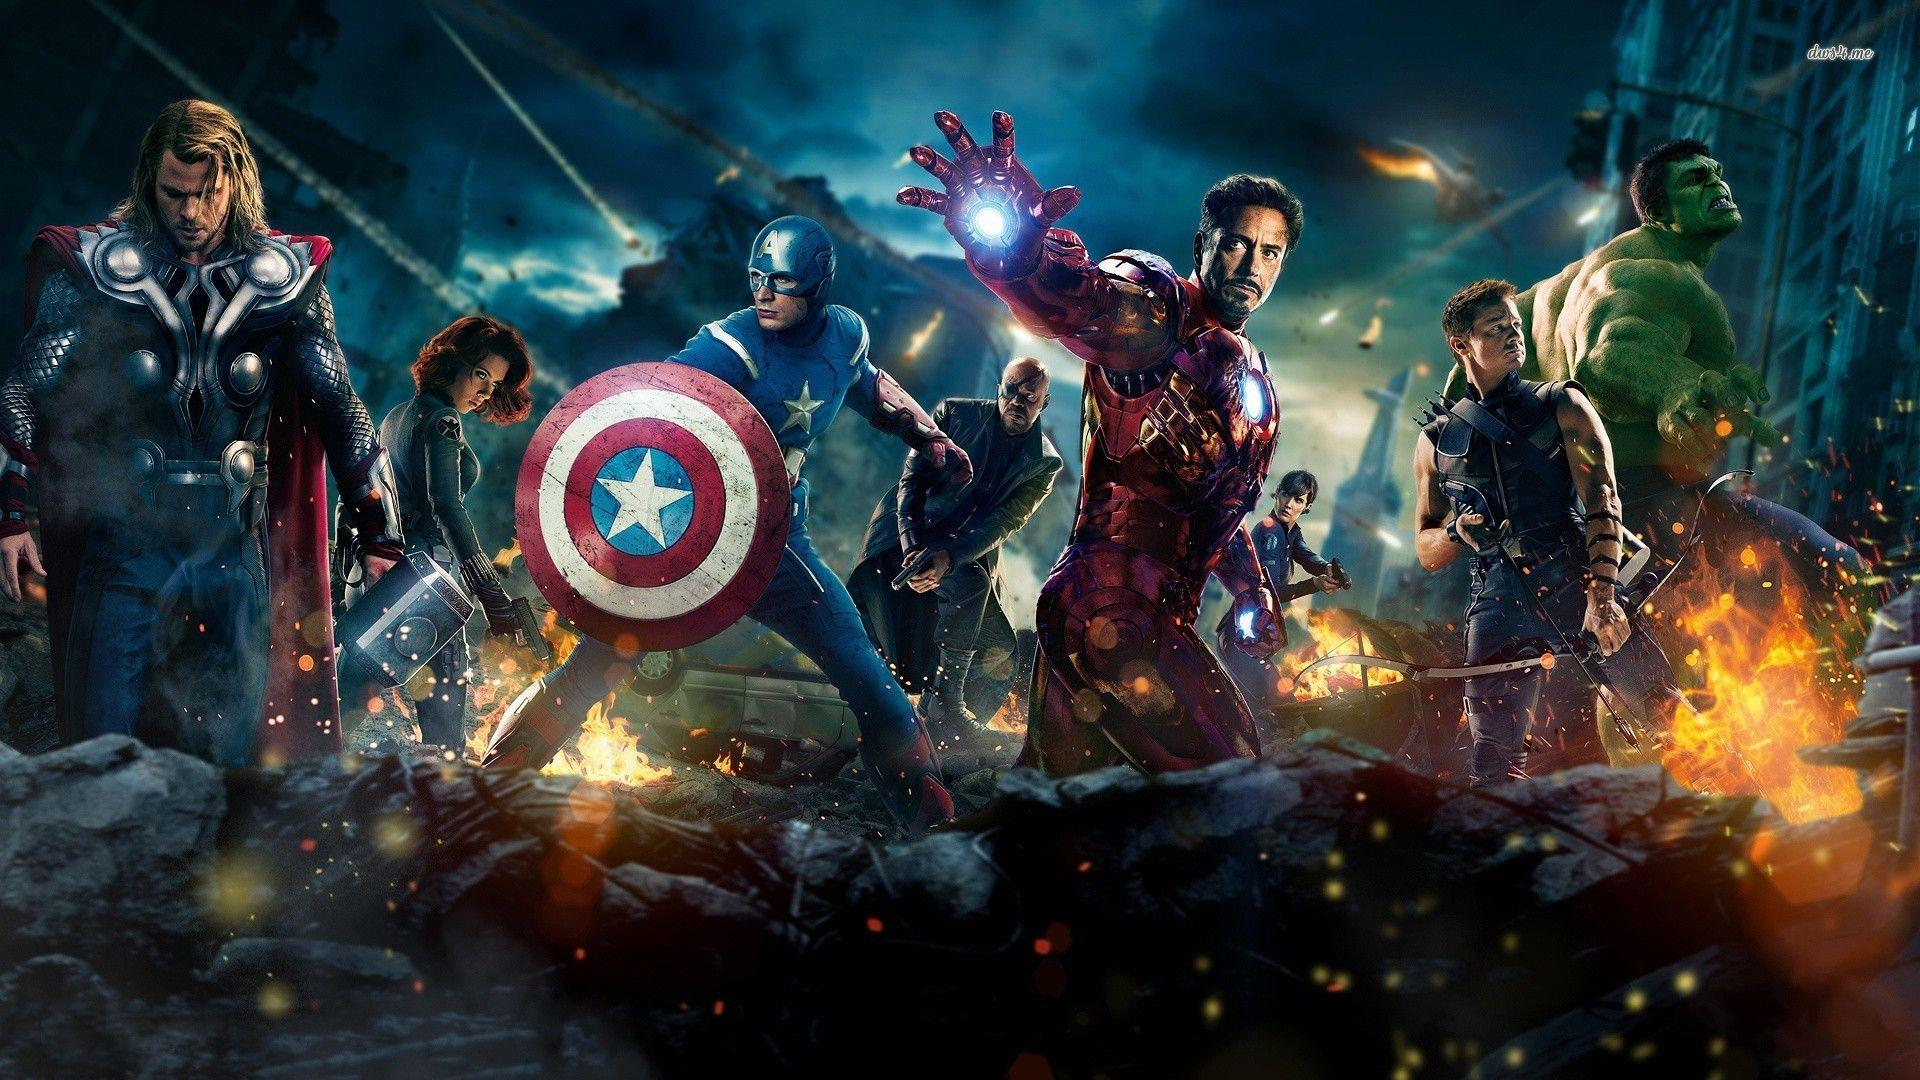 7 Substantial Changes That Will Happen In The MCU After Avengers 4